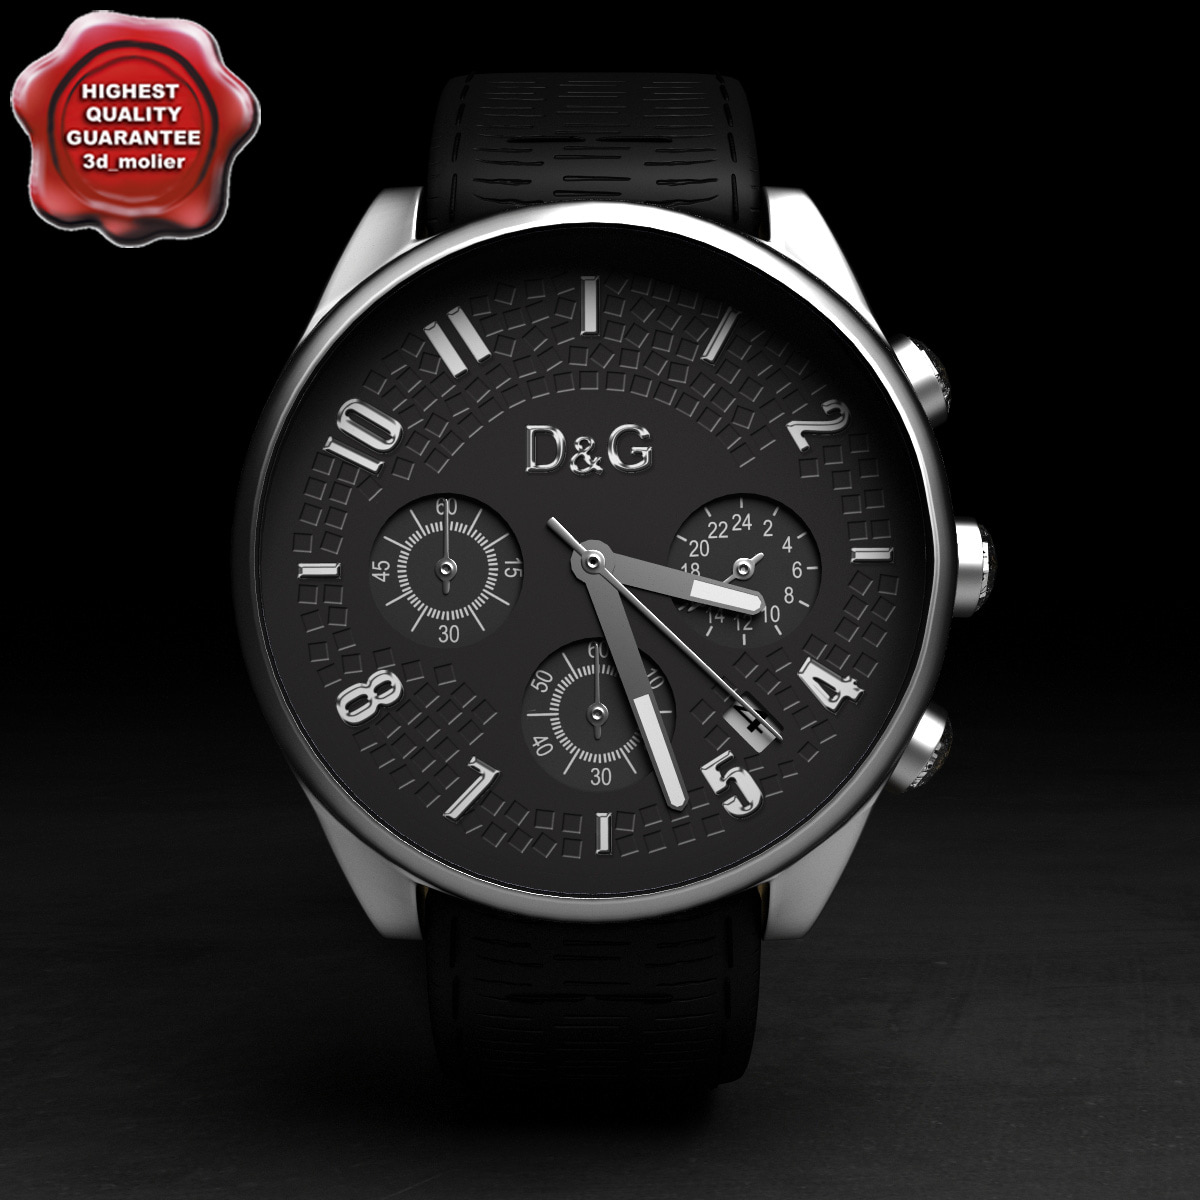 Watch_D&G_00.jpg